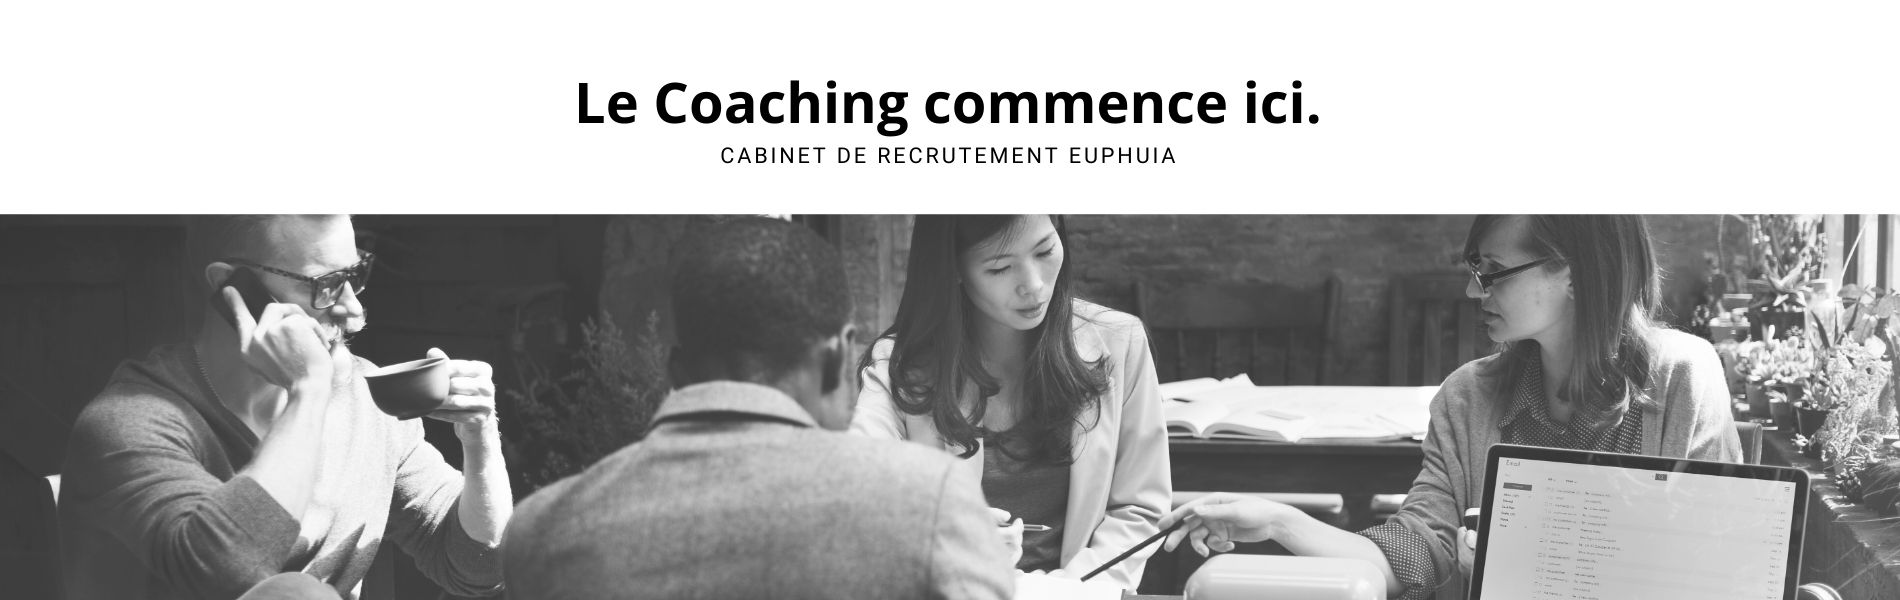 Coaching Entreprise Paris Nantes Bordeaux